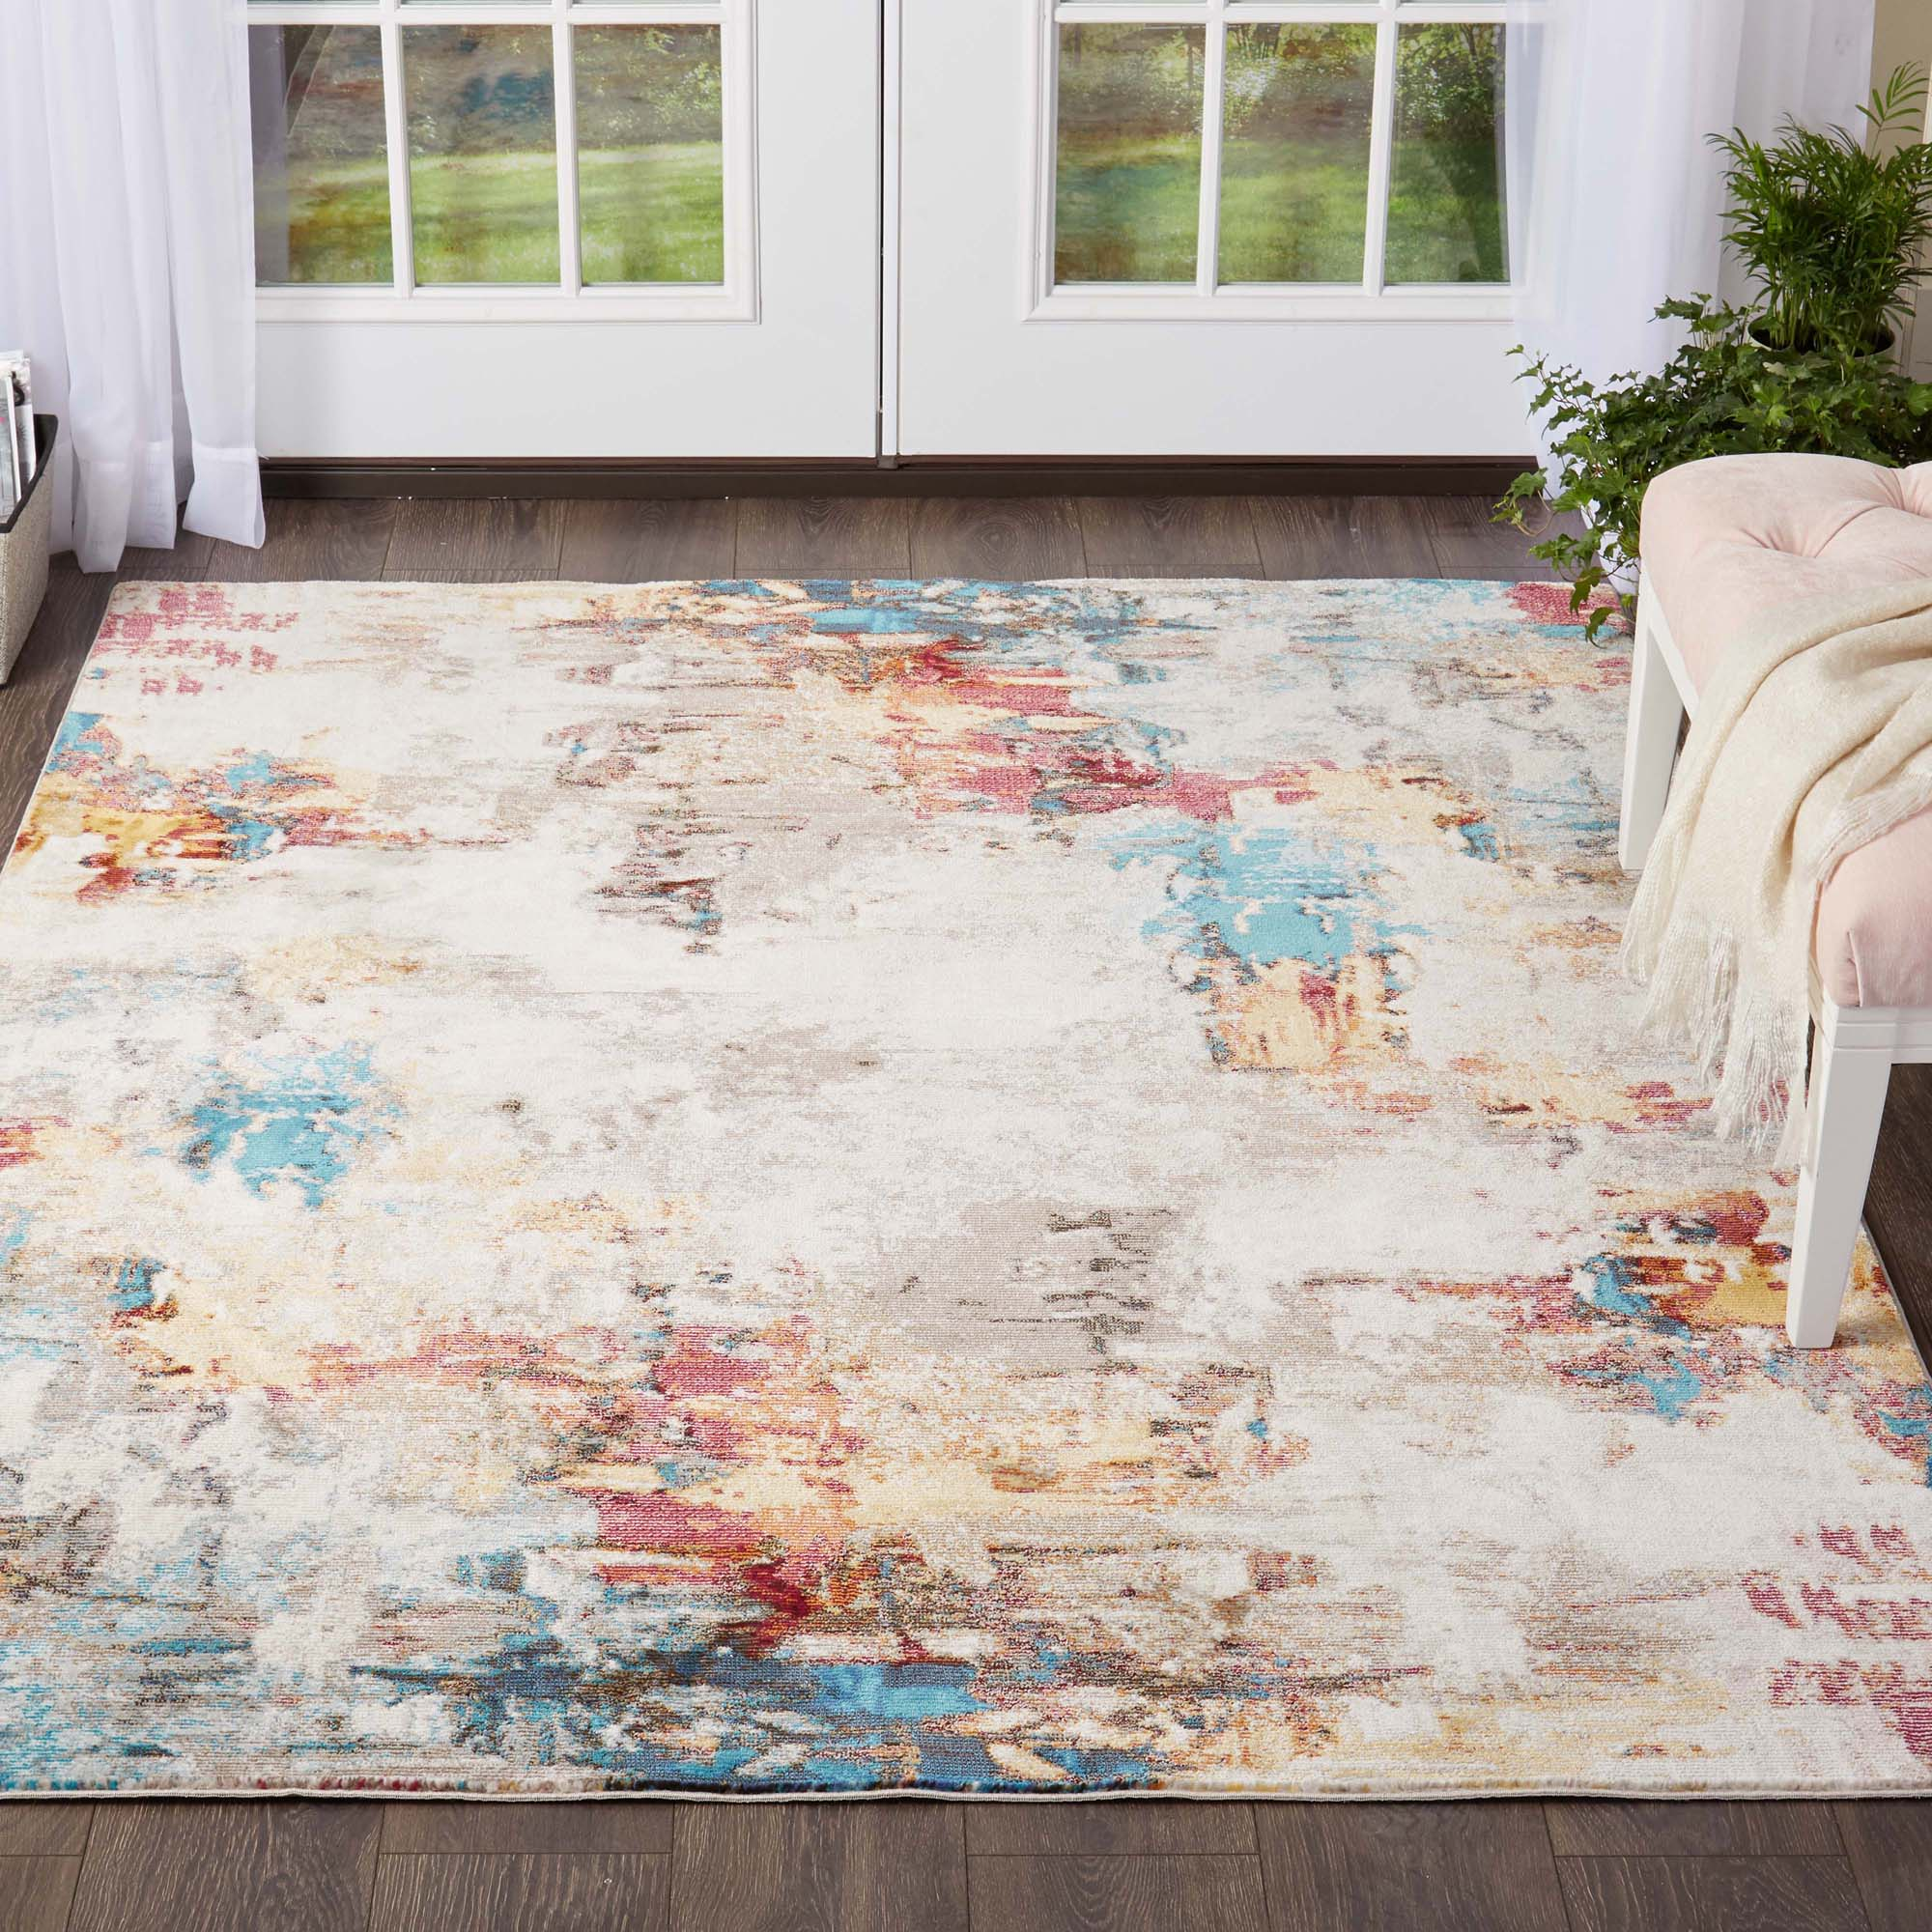 Nicole Miller Designer Area Rug Multi Color Contemporary Abstract